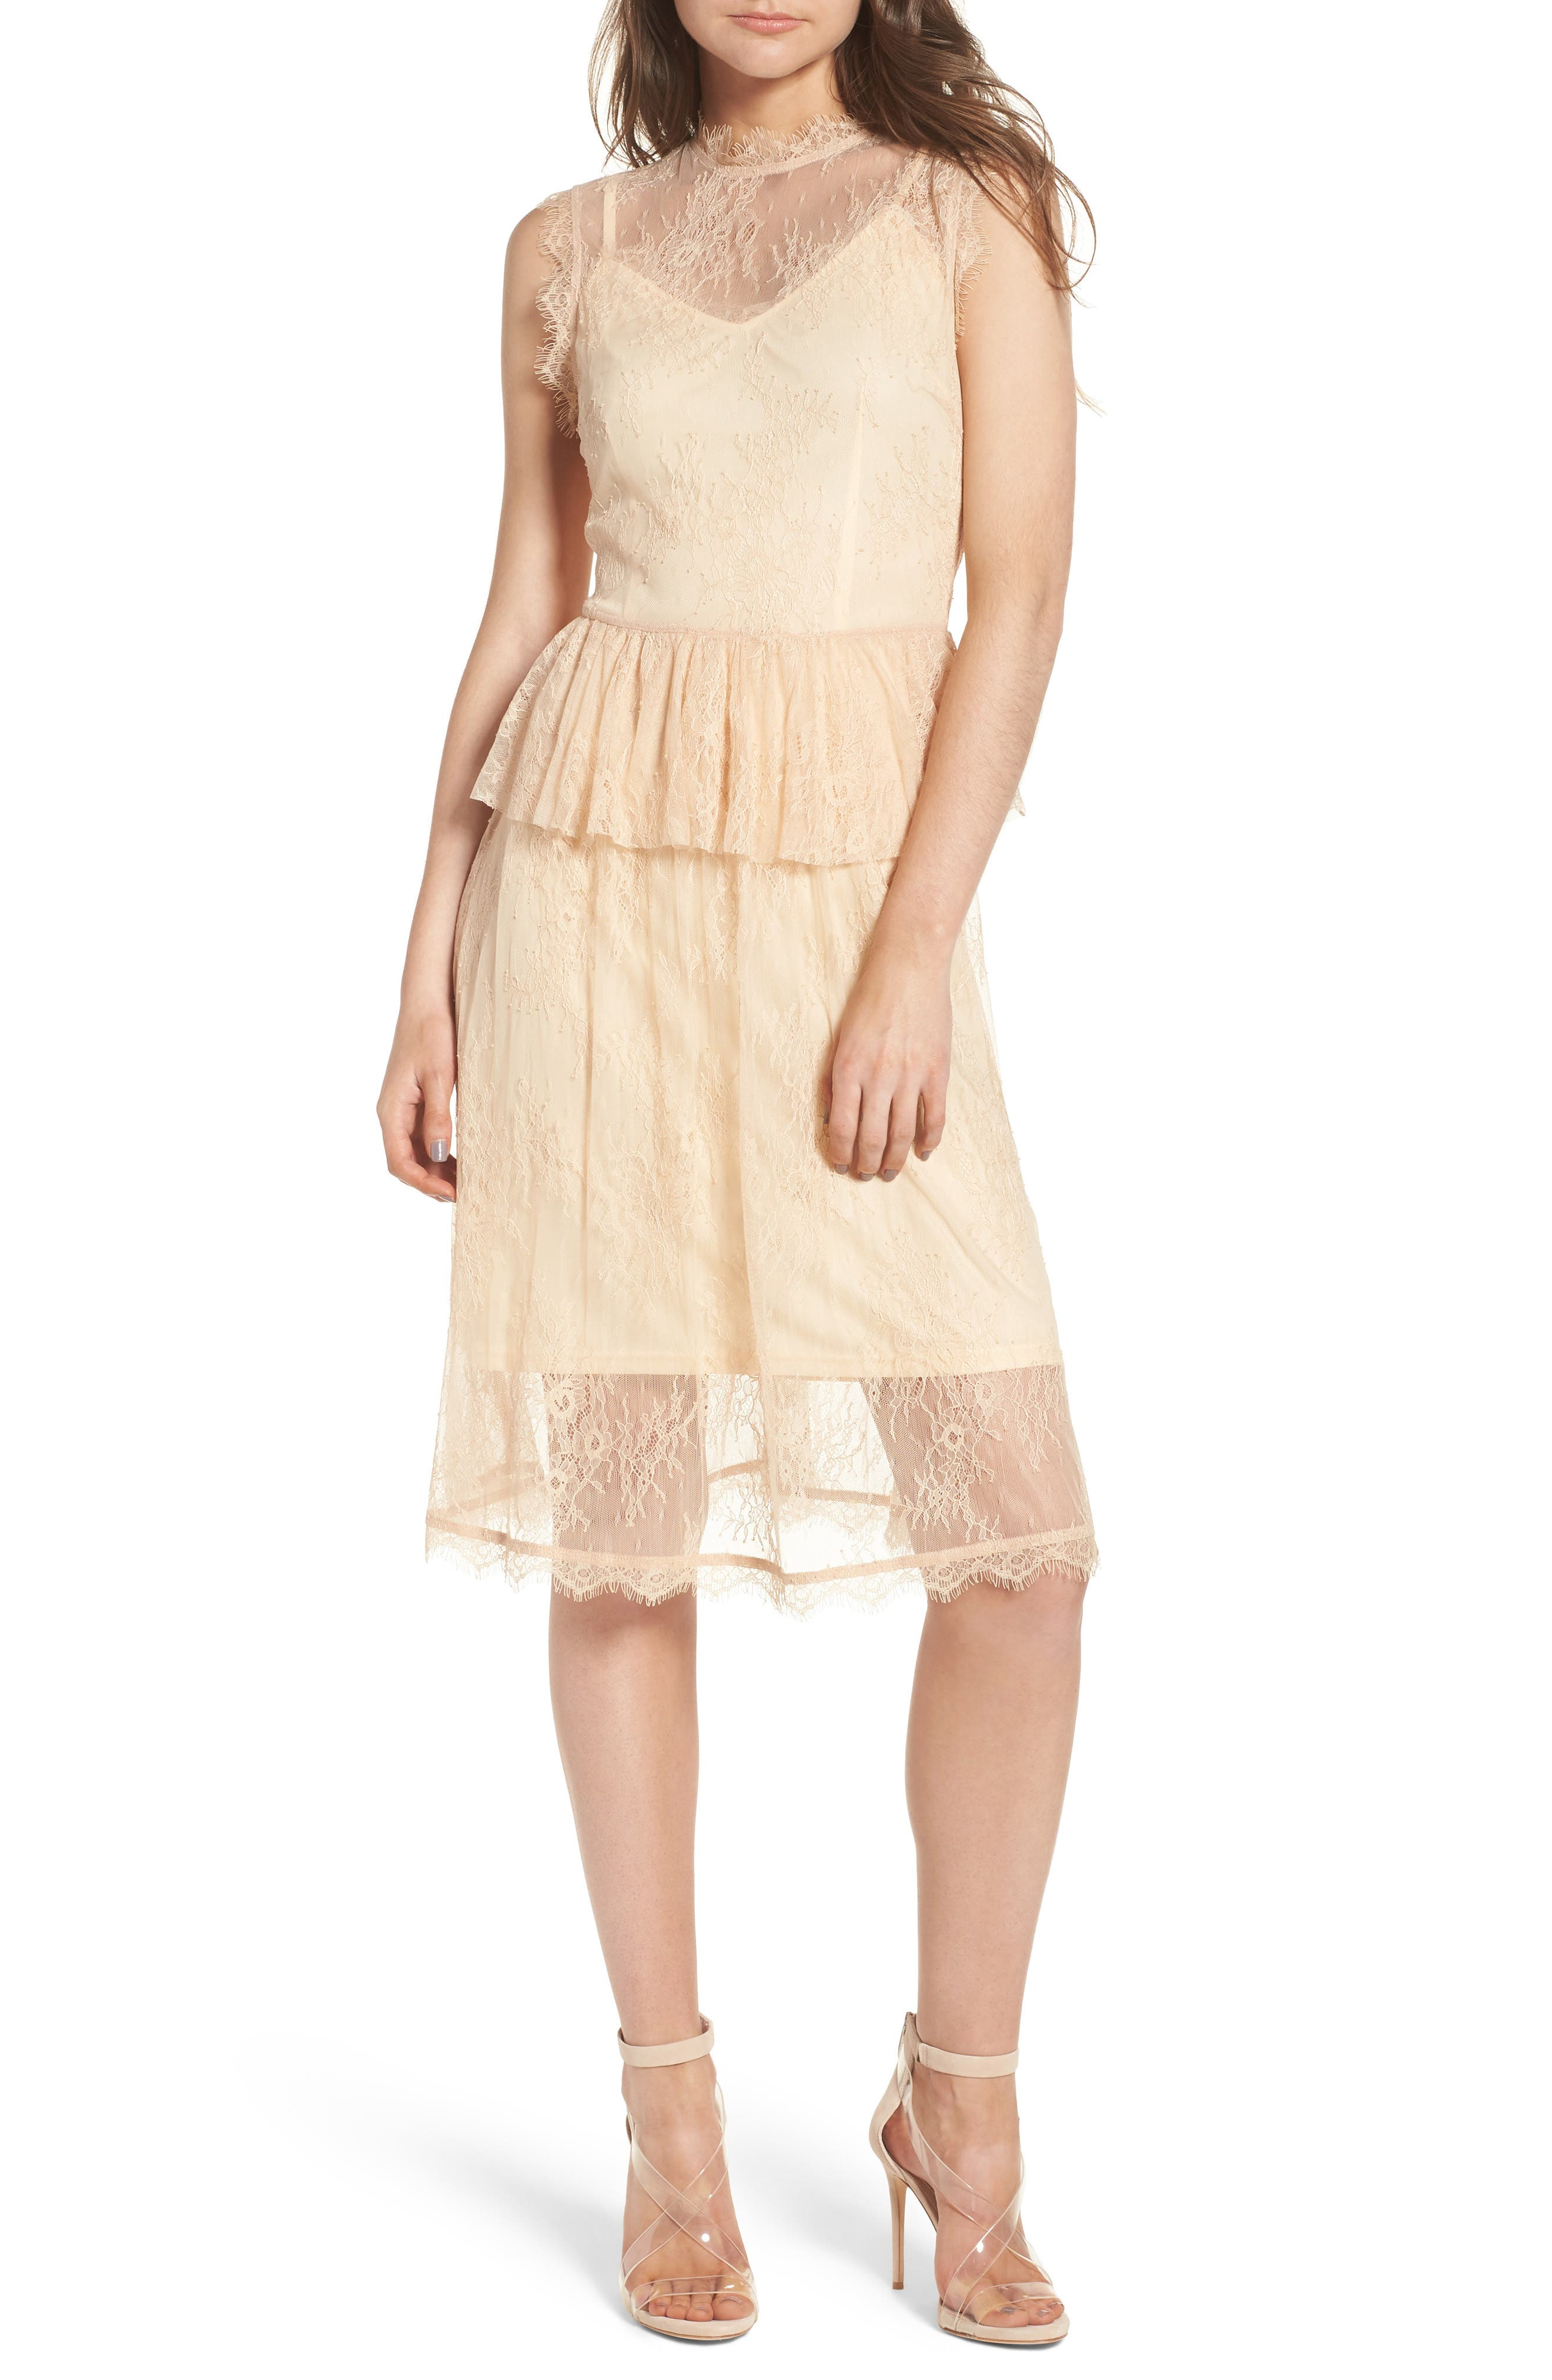 LOST INK Lace Fit & Flare Dress